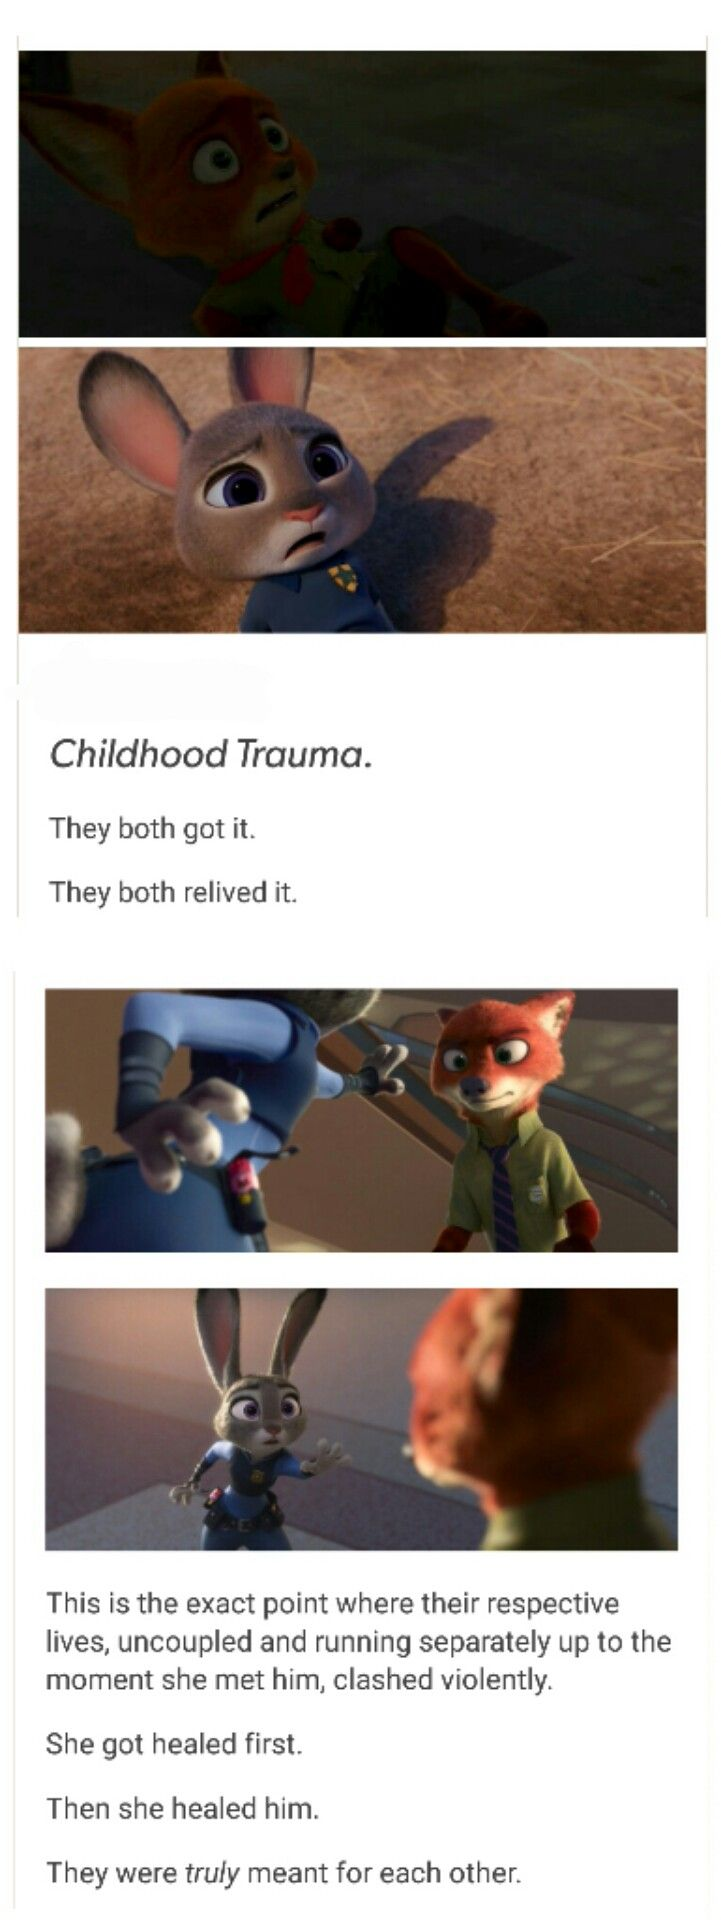 Why Judy and Nick got along so well at the end.